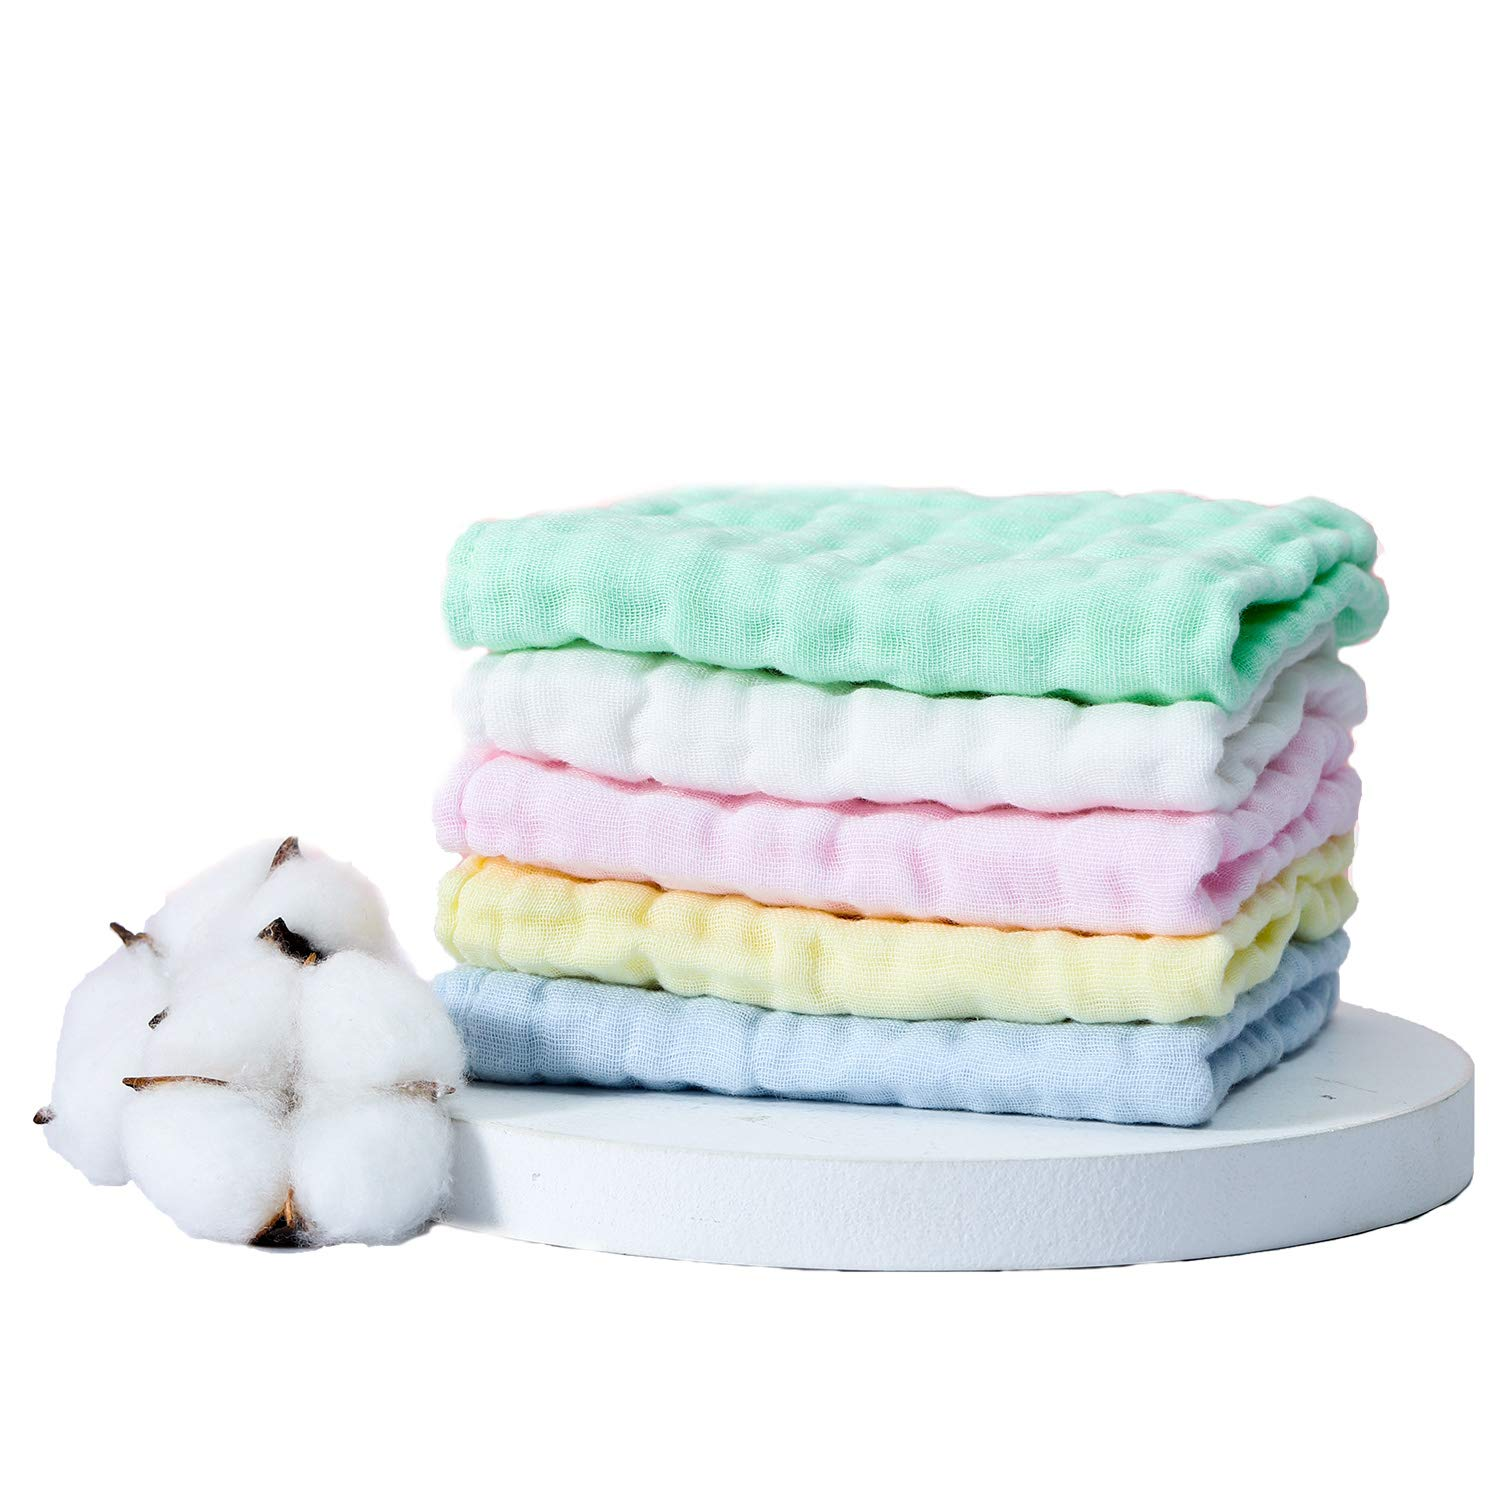 BABY MUSLIN 100% NATURAL COTTON WASHCLOTHS(12X12 INCHES 5 COLORS) SOFT NEWBORN BABY FACE TOWEL AND MUSLIN WASHCLOTH FOR SENSITIVE SKIN- BABY REGISTRY AS SHOWER GIFT